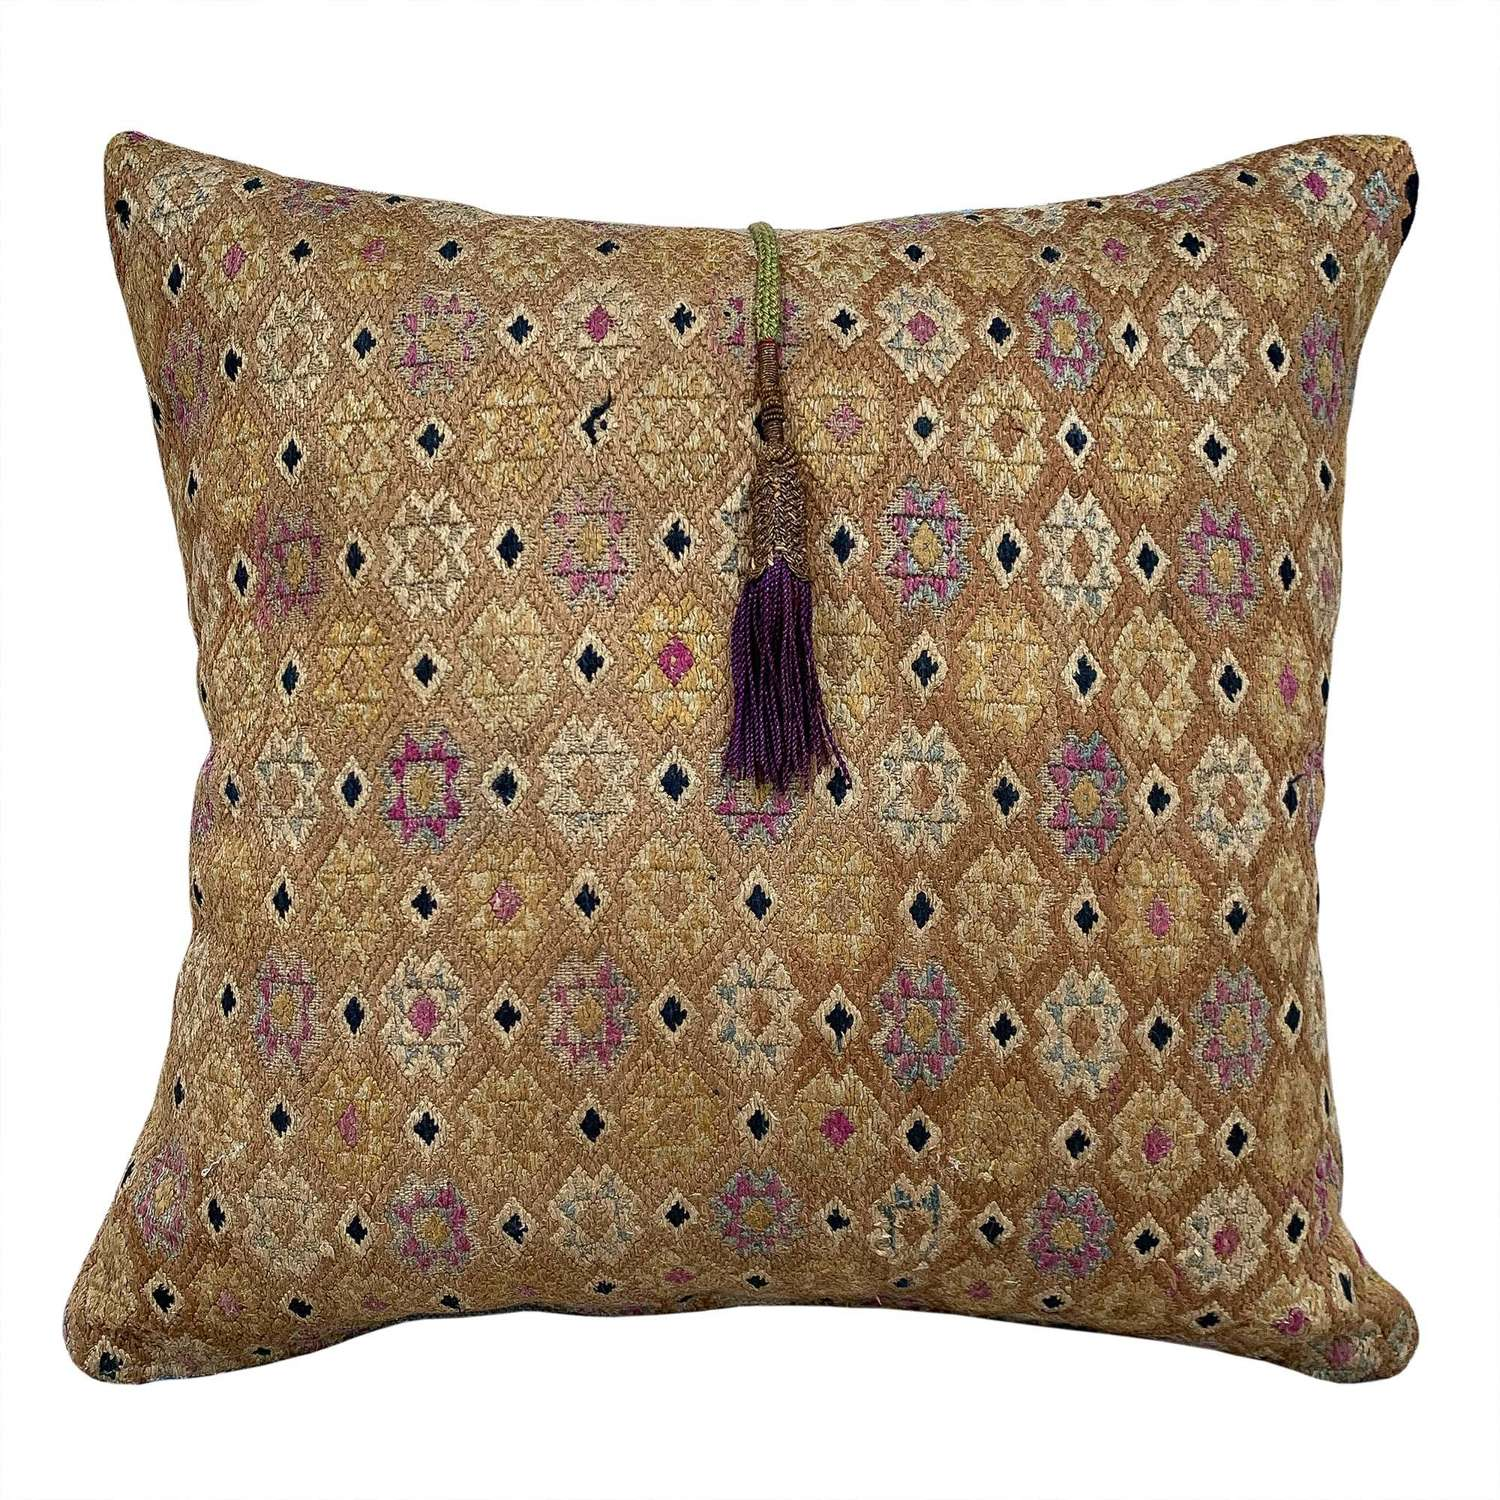 Exquisite C19 Buyi textile cushion